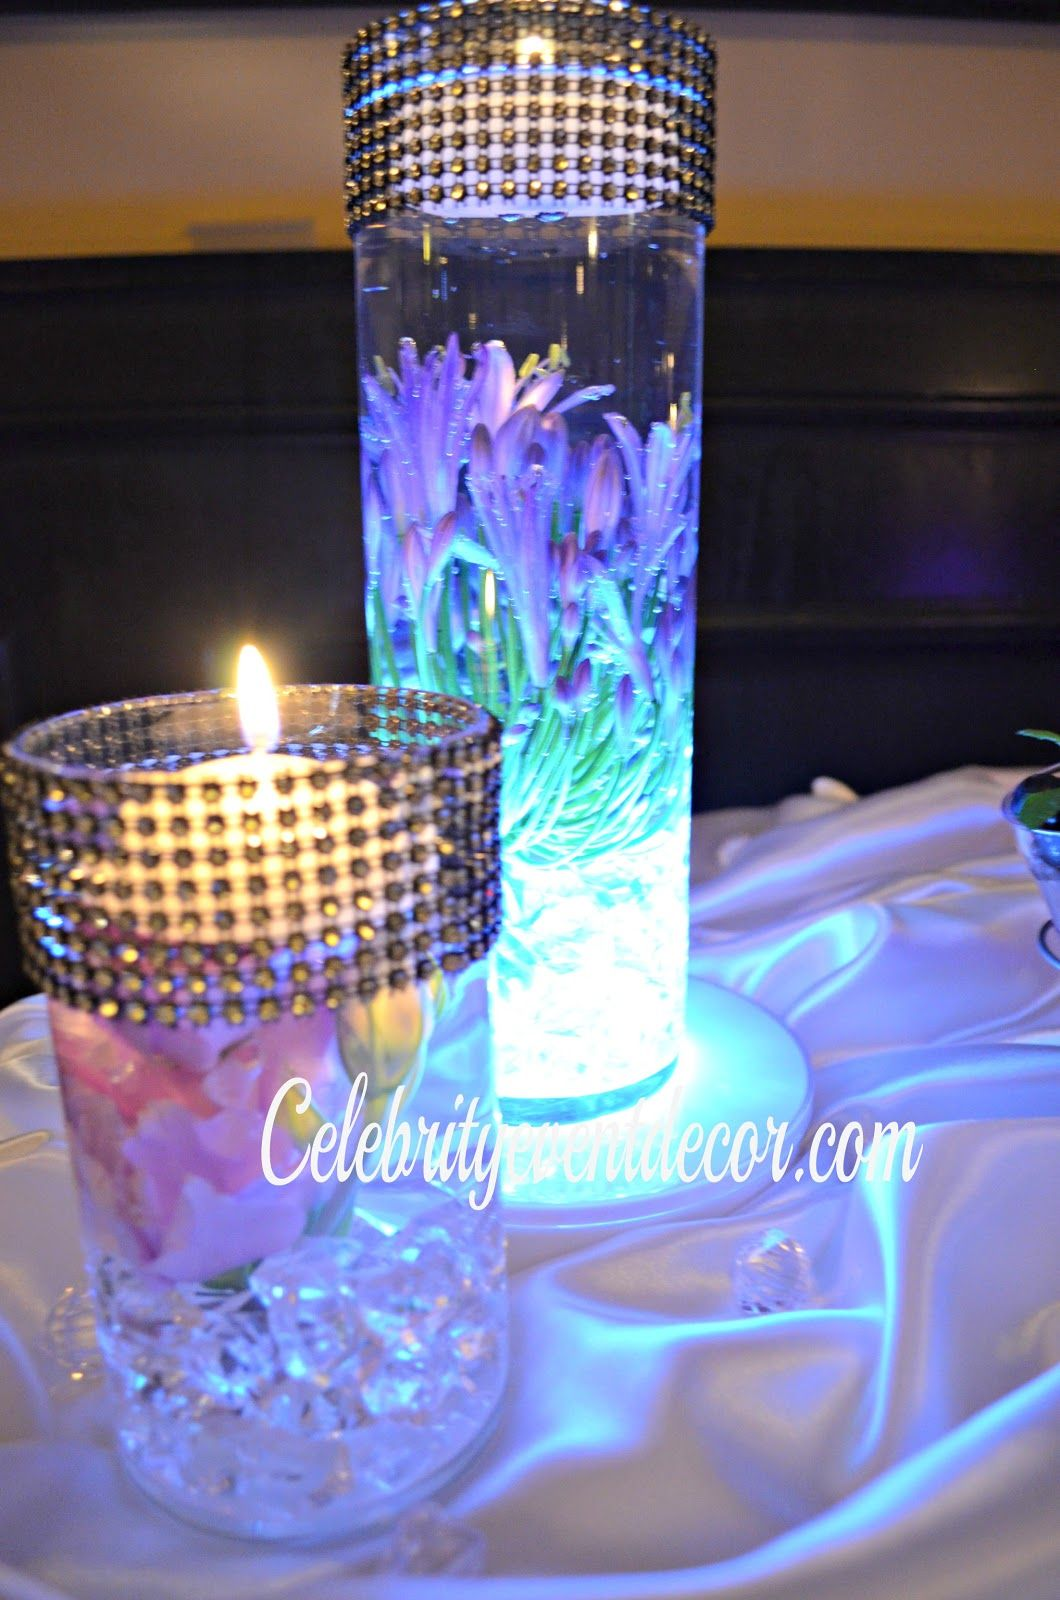 Elegant birthday table decorations - Custom Wedding Glass Toasting Glass Wine Glasses Toasting Flutes For Bride And Groom Table Settings Wedding Gift Decorations